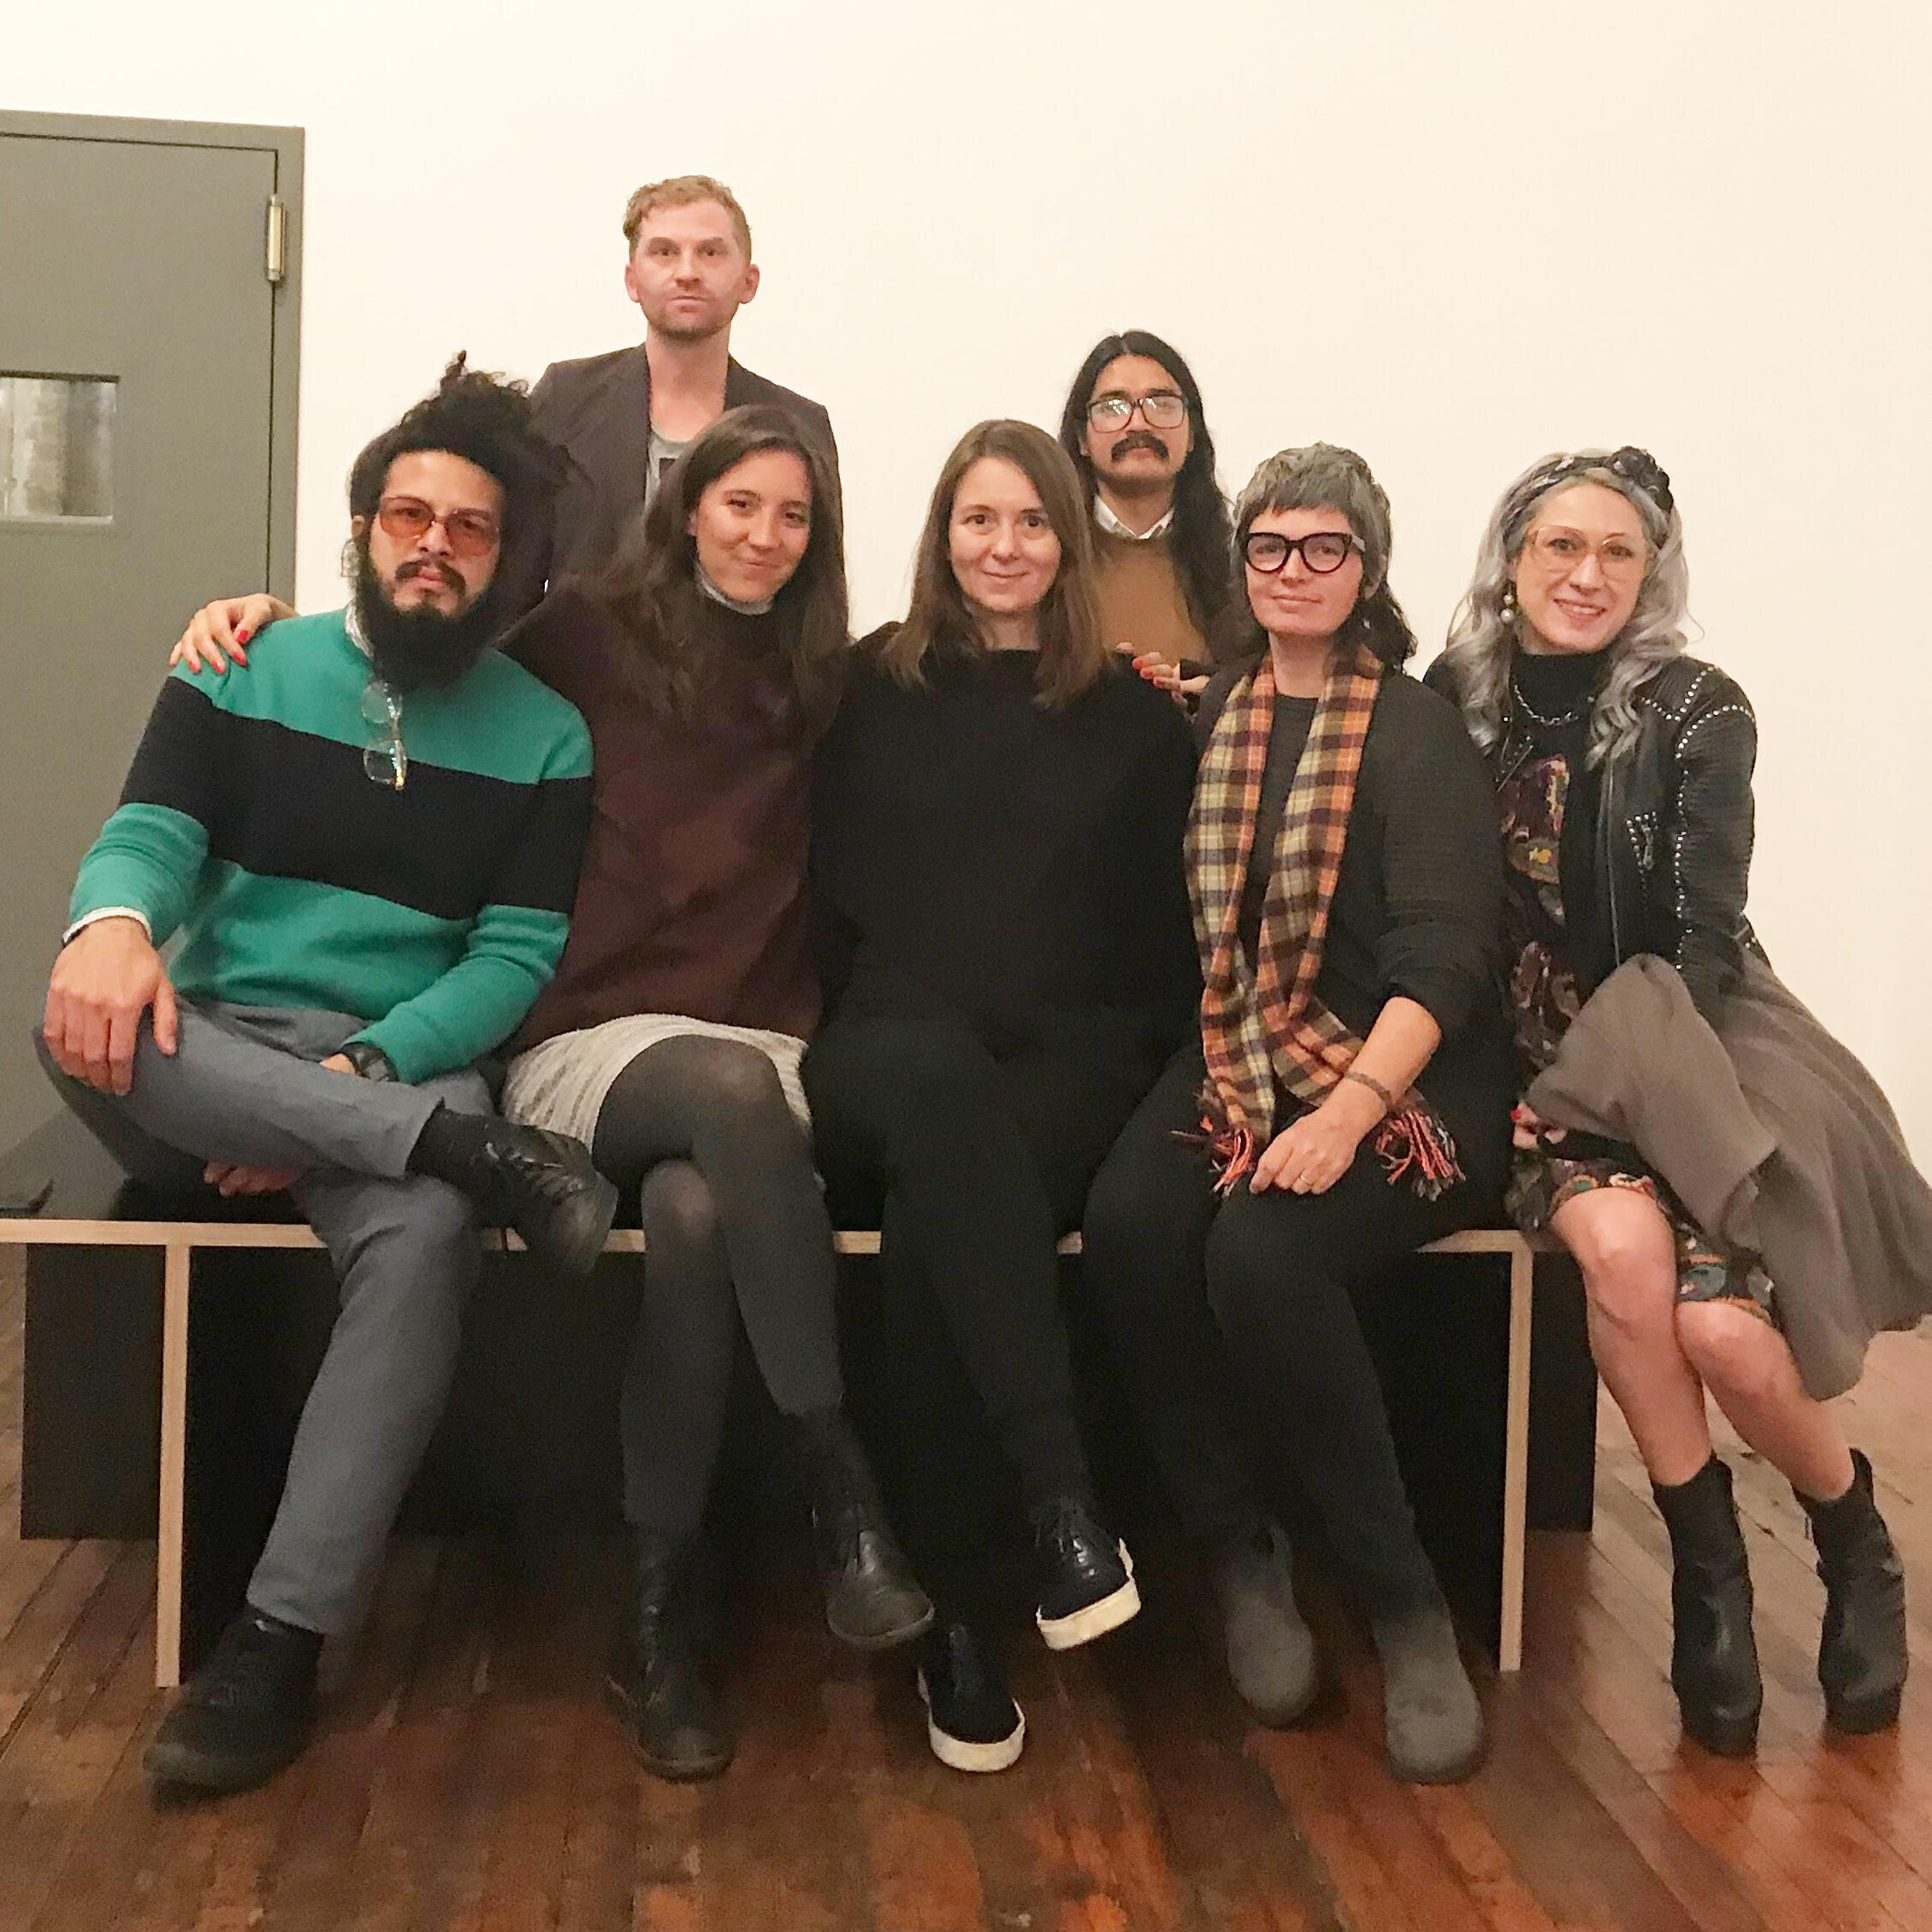 2019 Fall Fellows after a tour of Donald Judd's home on Spring St., NYC. A huge thanks to our repeat offender, Chris Rawson, for always arranging for these tours. (Pictured from left to right: Armando Rosales Rivero, Chris Rawson, Ivana Dizdar, Elizabeth Smolarz, Carlos Jiménez Cahua, Mira Friedlaender, Claudia Fernandez.)